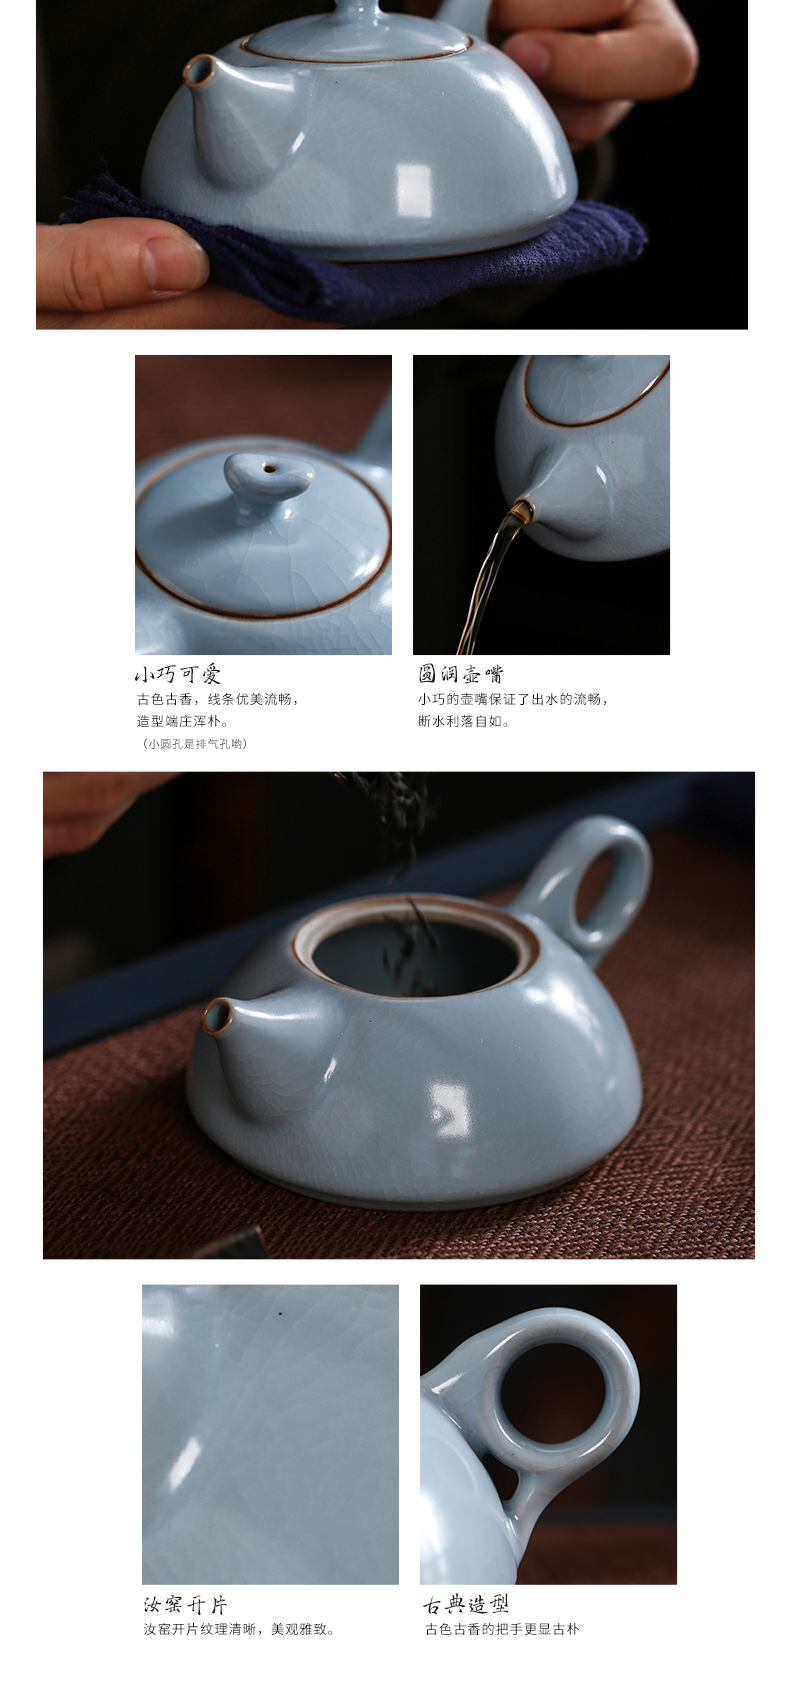 Chang south your up pot of tea mercifully kung fu tea teapot slicing can raise your porcelain undressed ore kung fu xi shi pot teapot